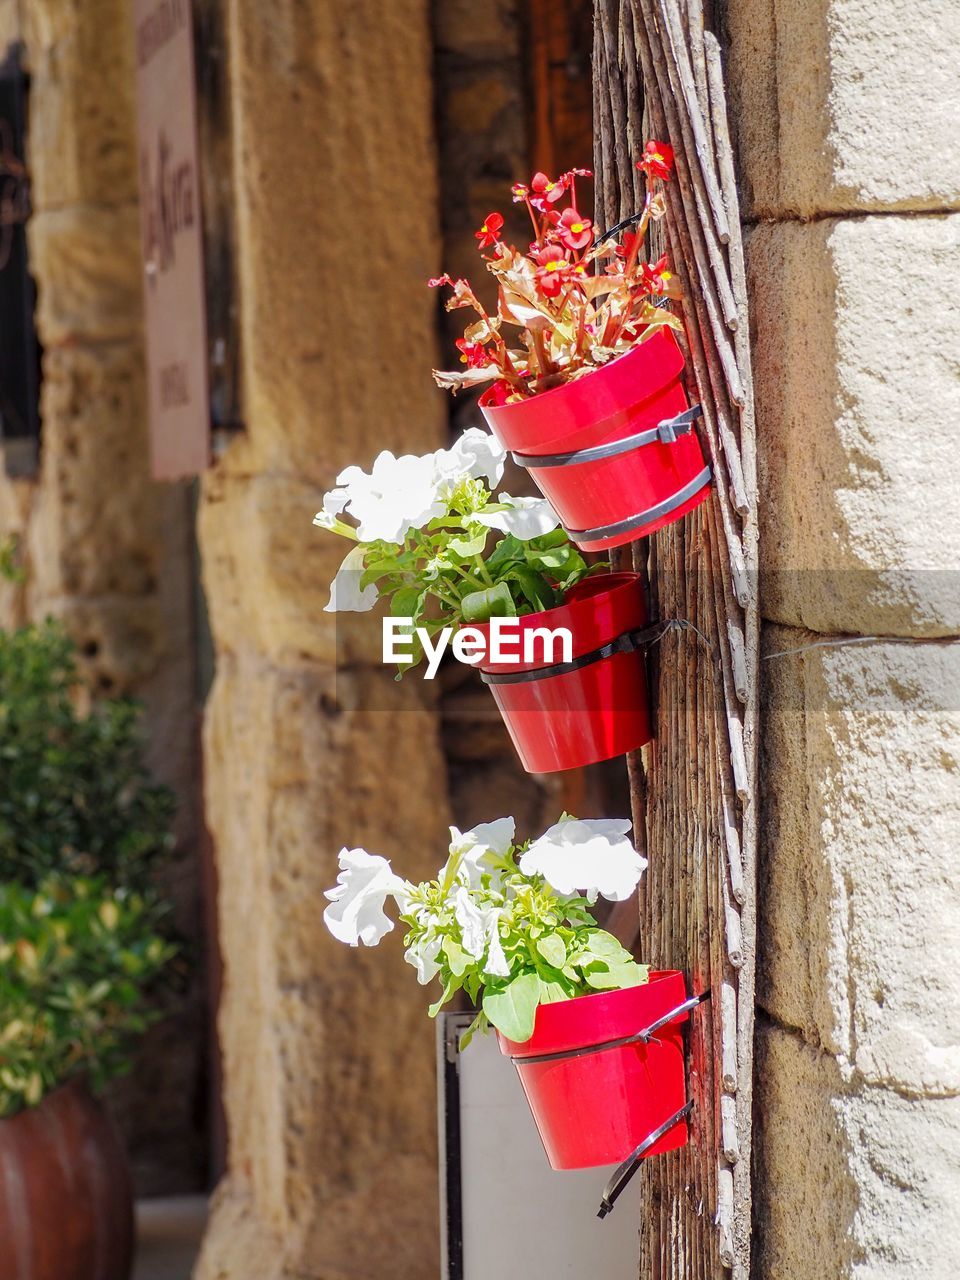 plant, flower, flowering plant, nature, freshness, red, potted plant, no people, day, built structure, vulnerability, fragility, architecture, beauty in nature, close-up, focus on foreground, growth, wall - building feature, container, decoration, outdoors, flower pot, flower head, window box